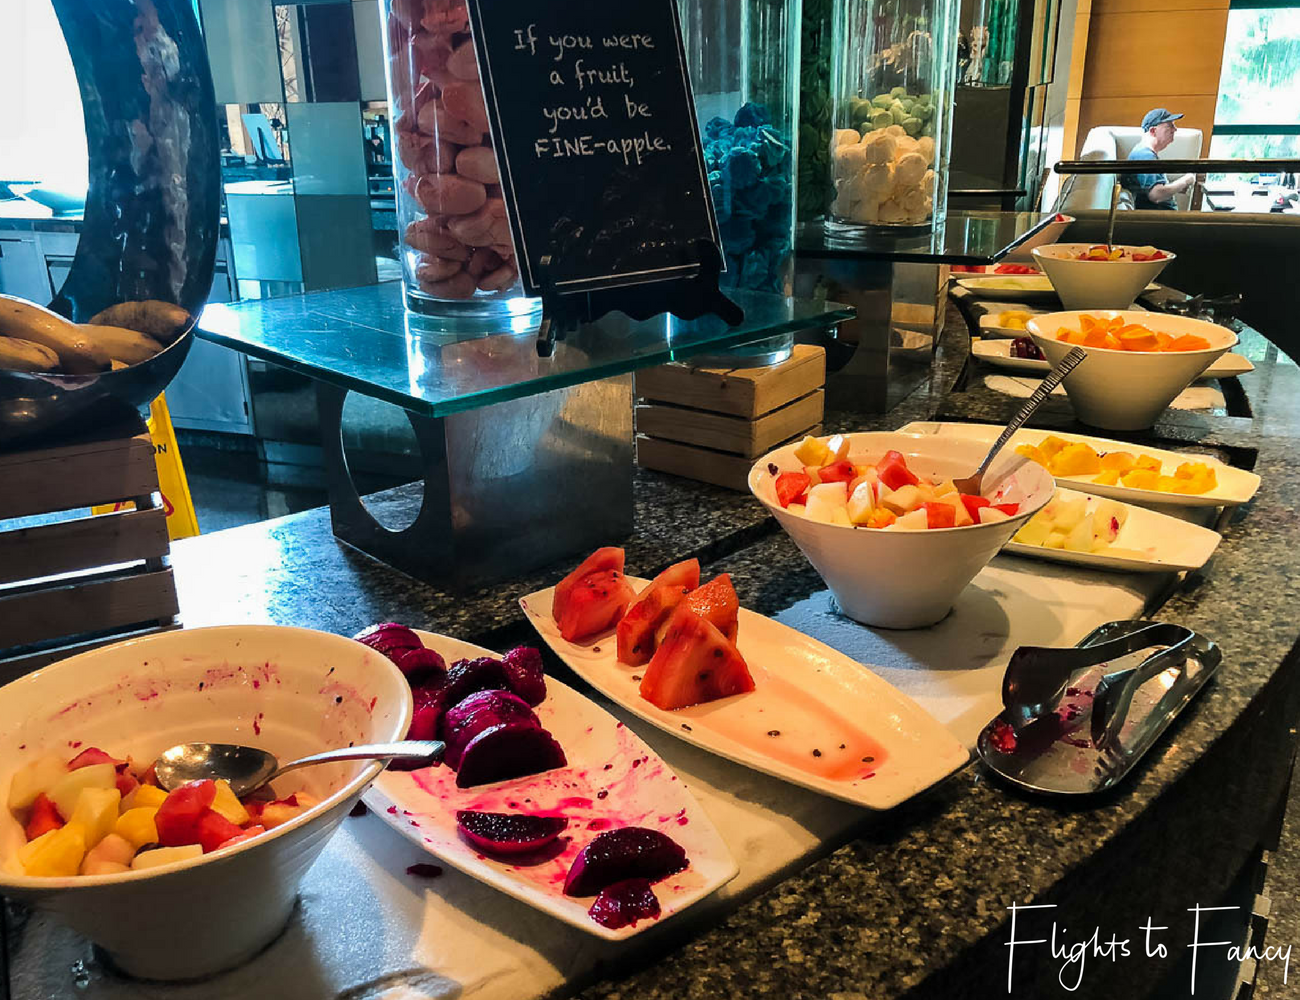 Hotel near SM Cebu City - Radisson Blue Cebu Fruit Buffet by Flights to Fancy